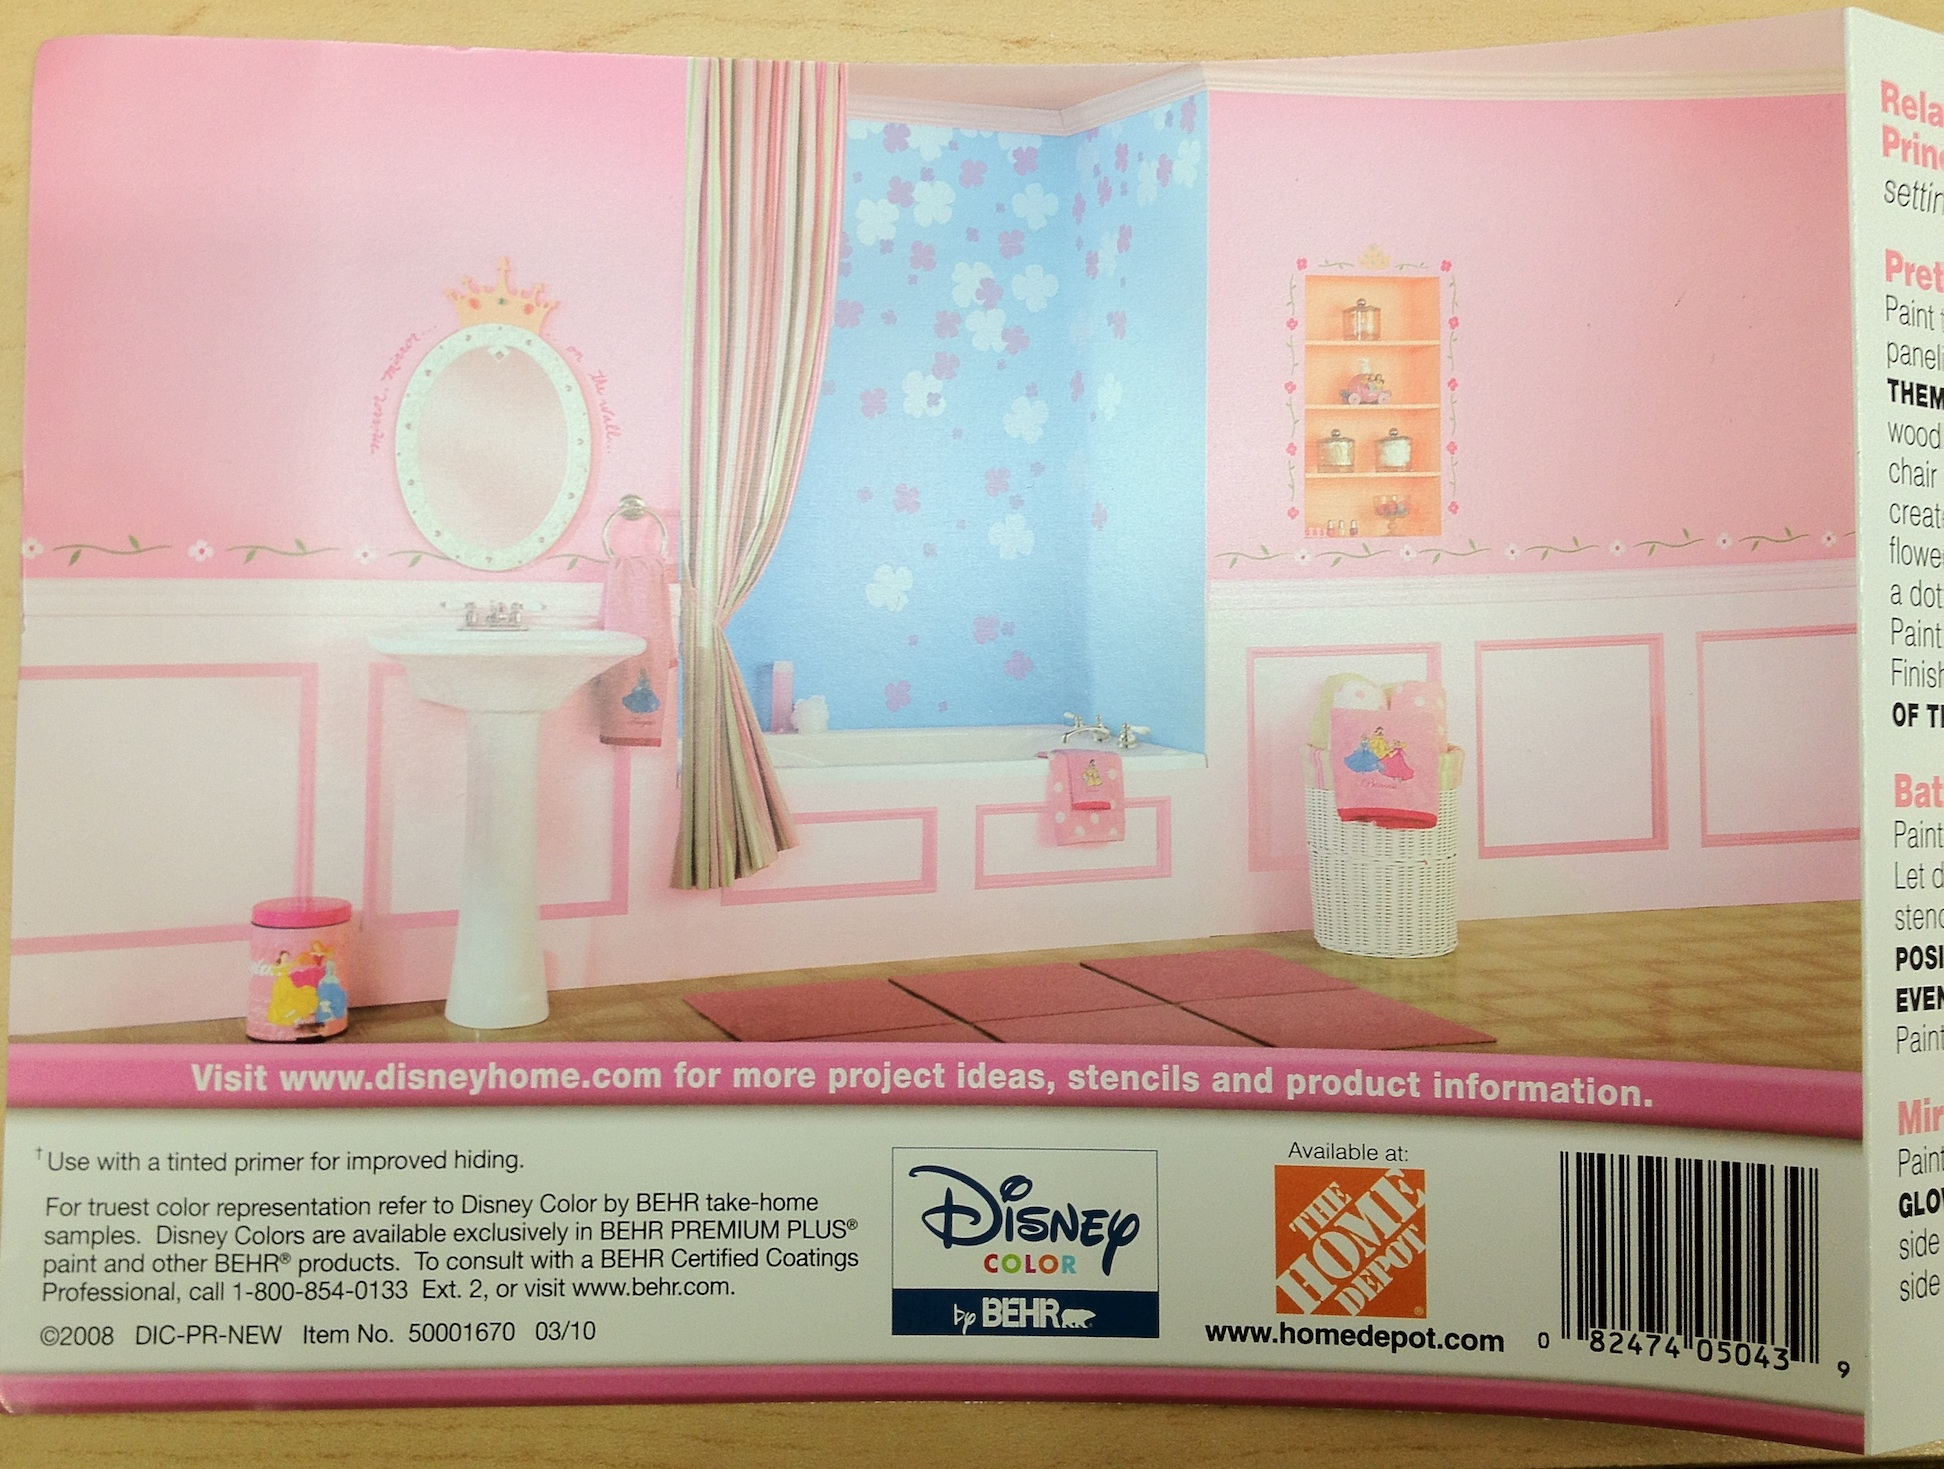 A Princess Bathroom Lifestyle Branding And The Disney Princess Megabrand |  Rebecca Hains